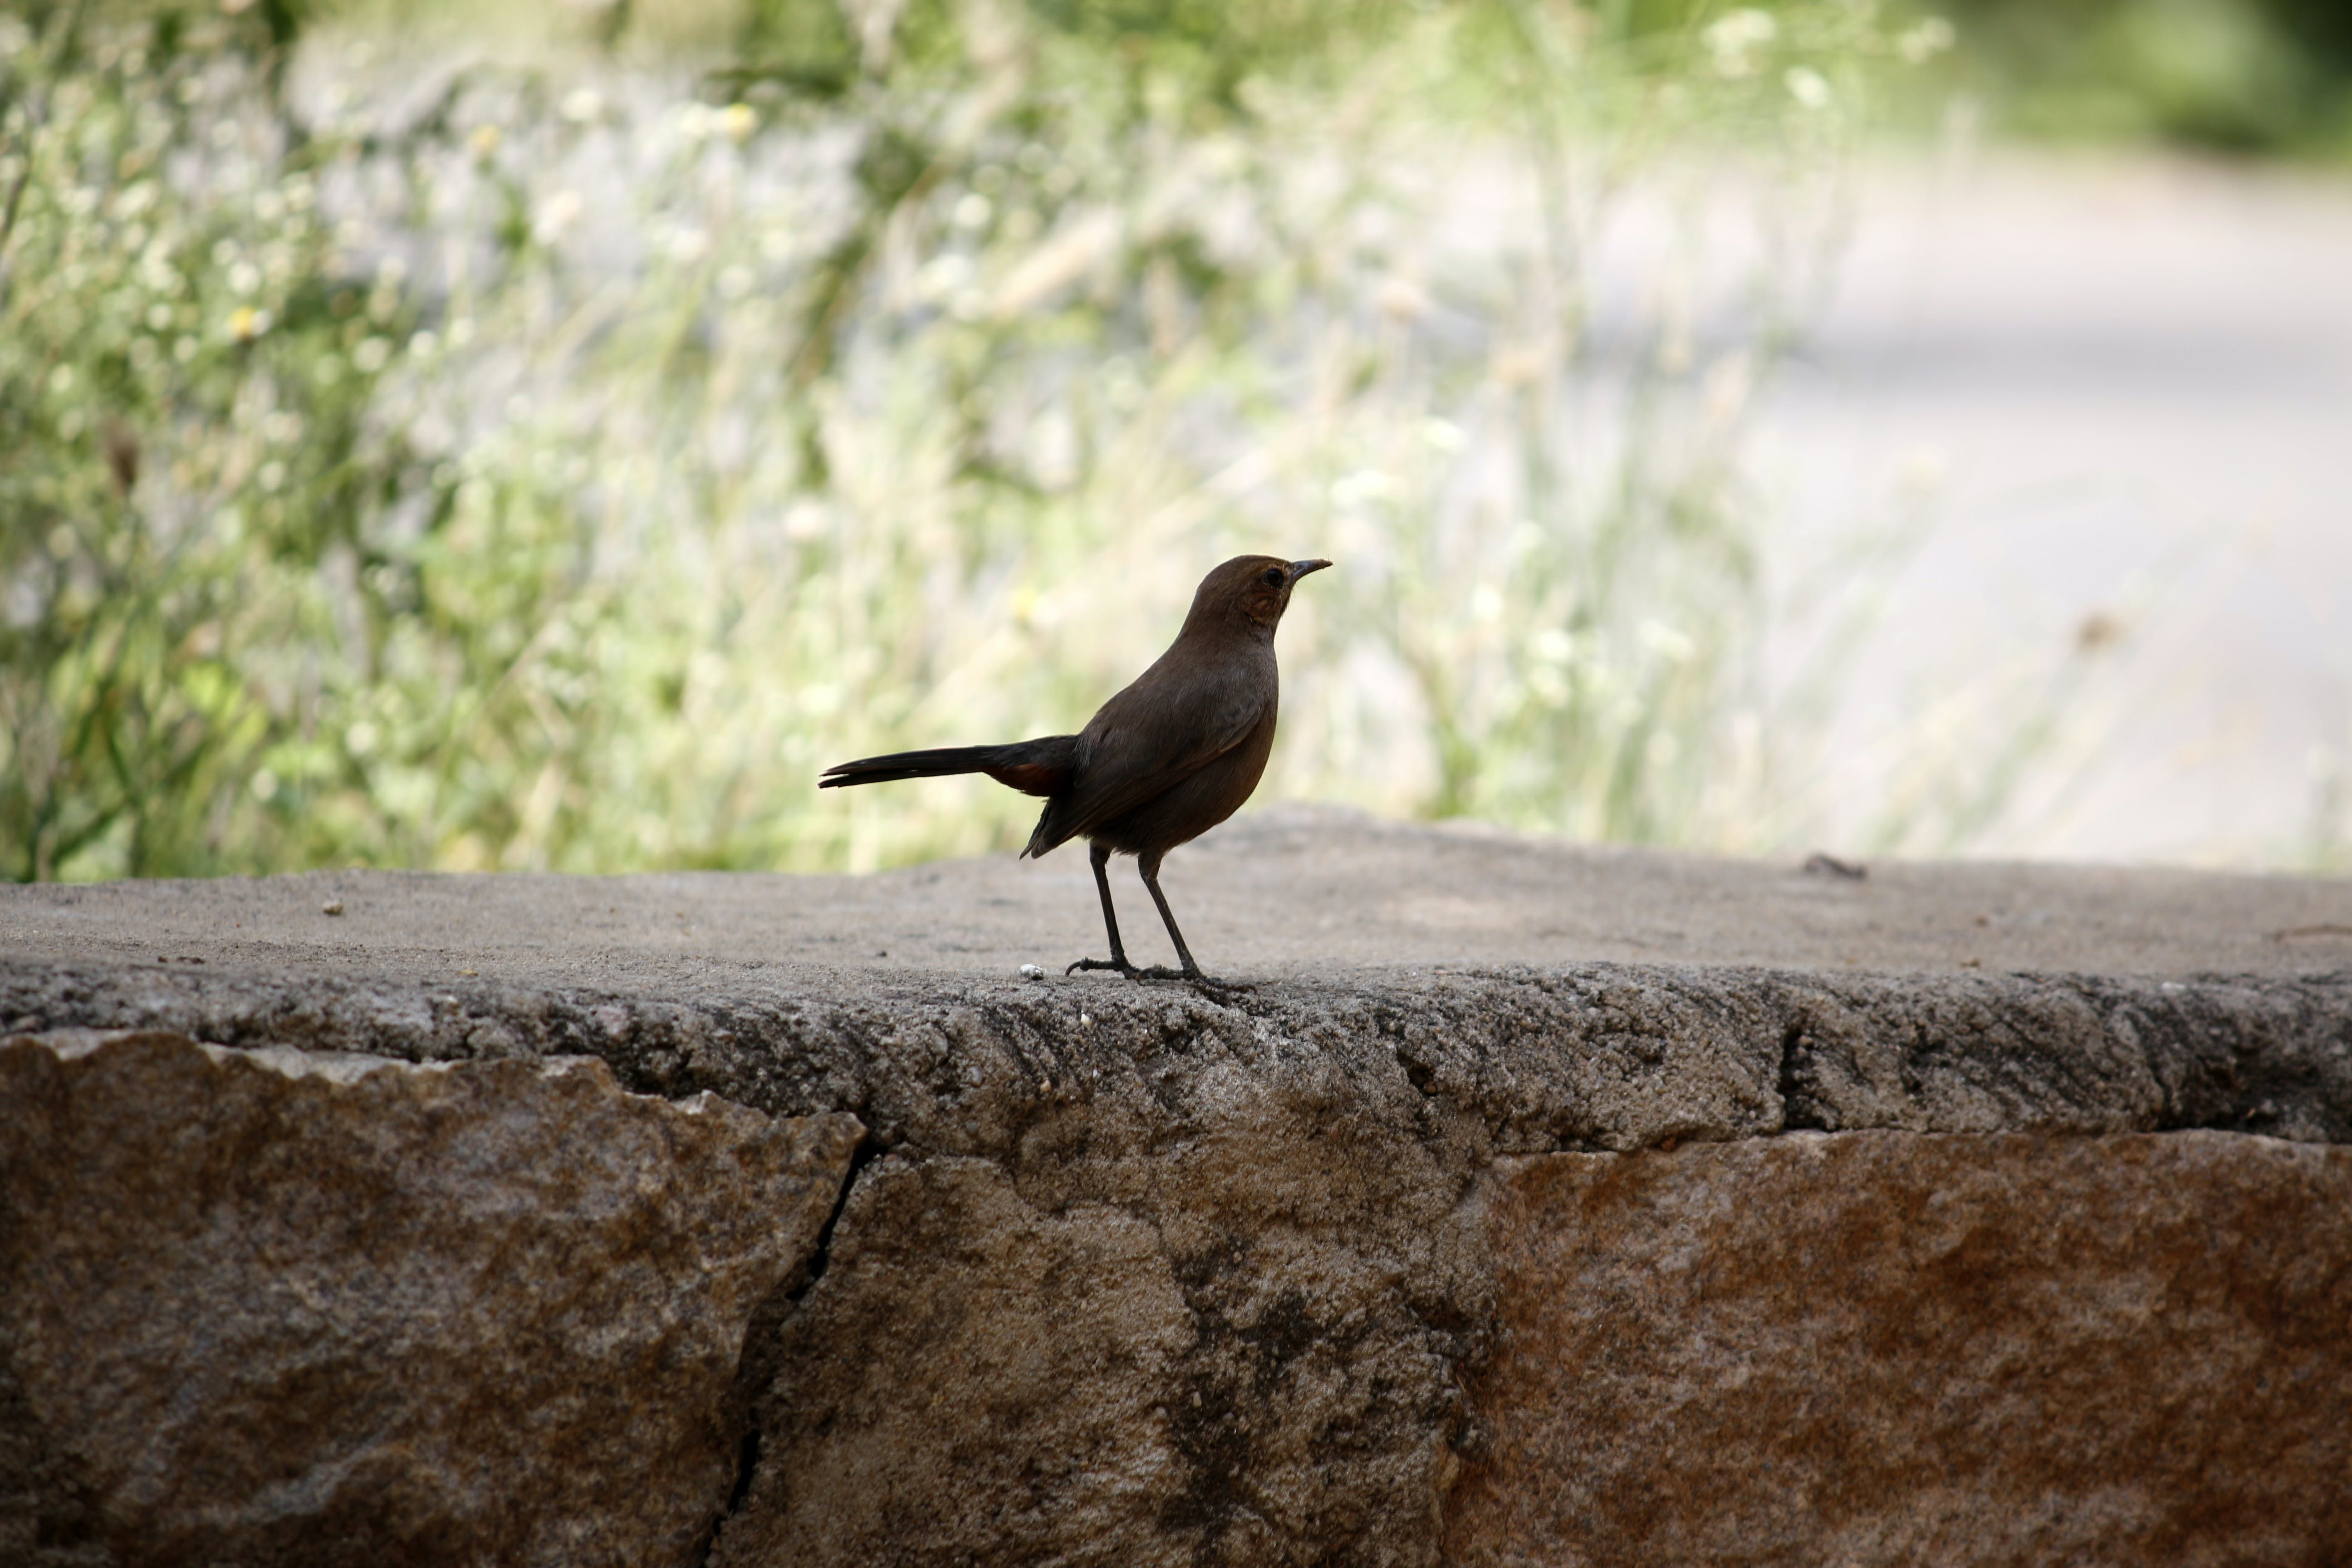 Black Bird on Stone Surface